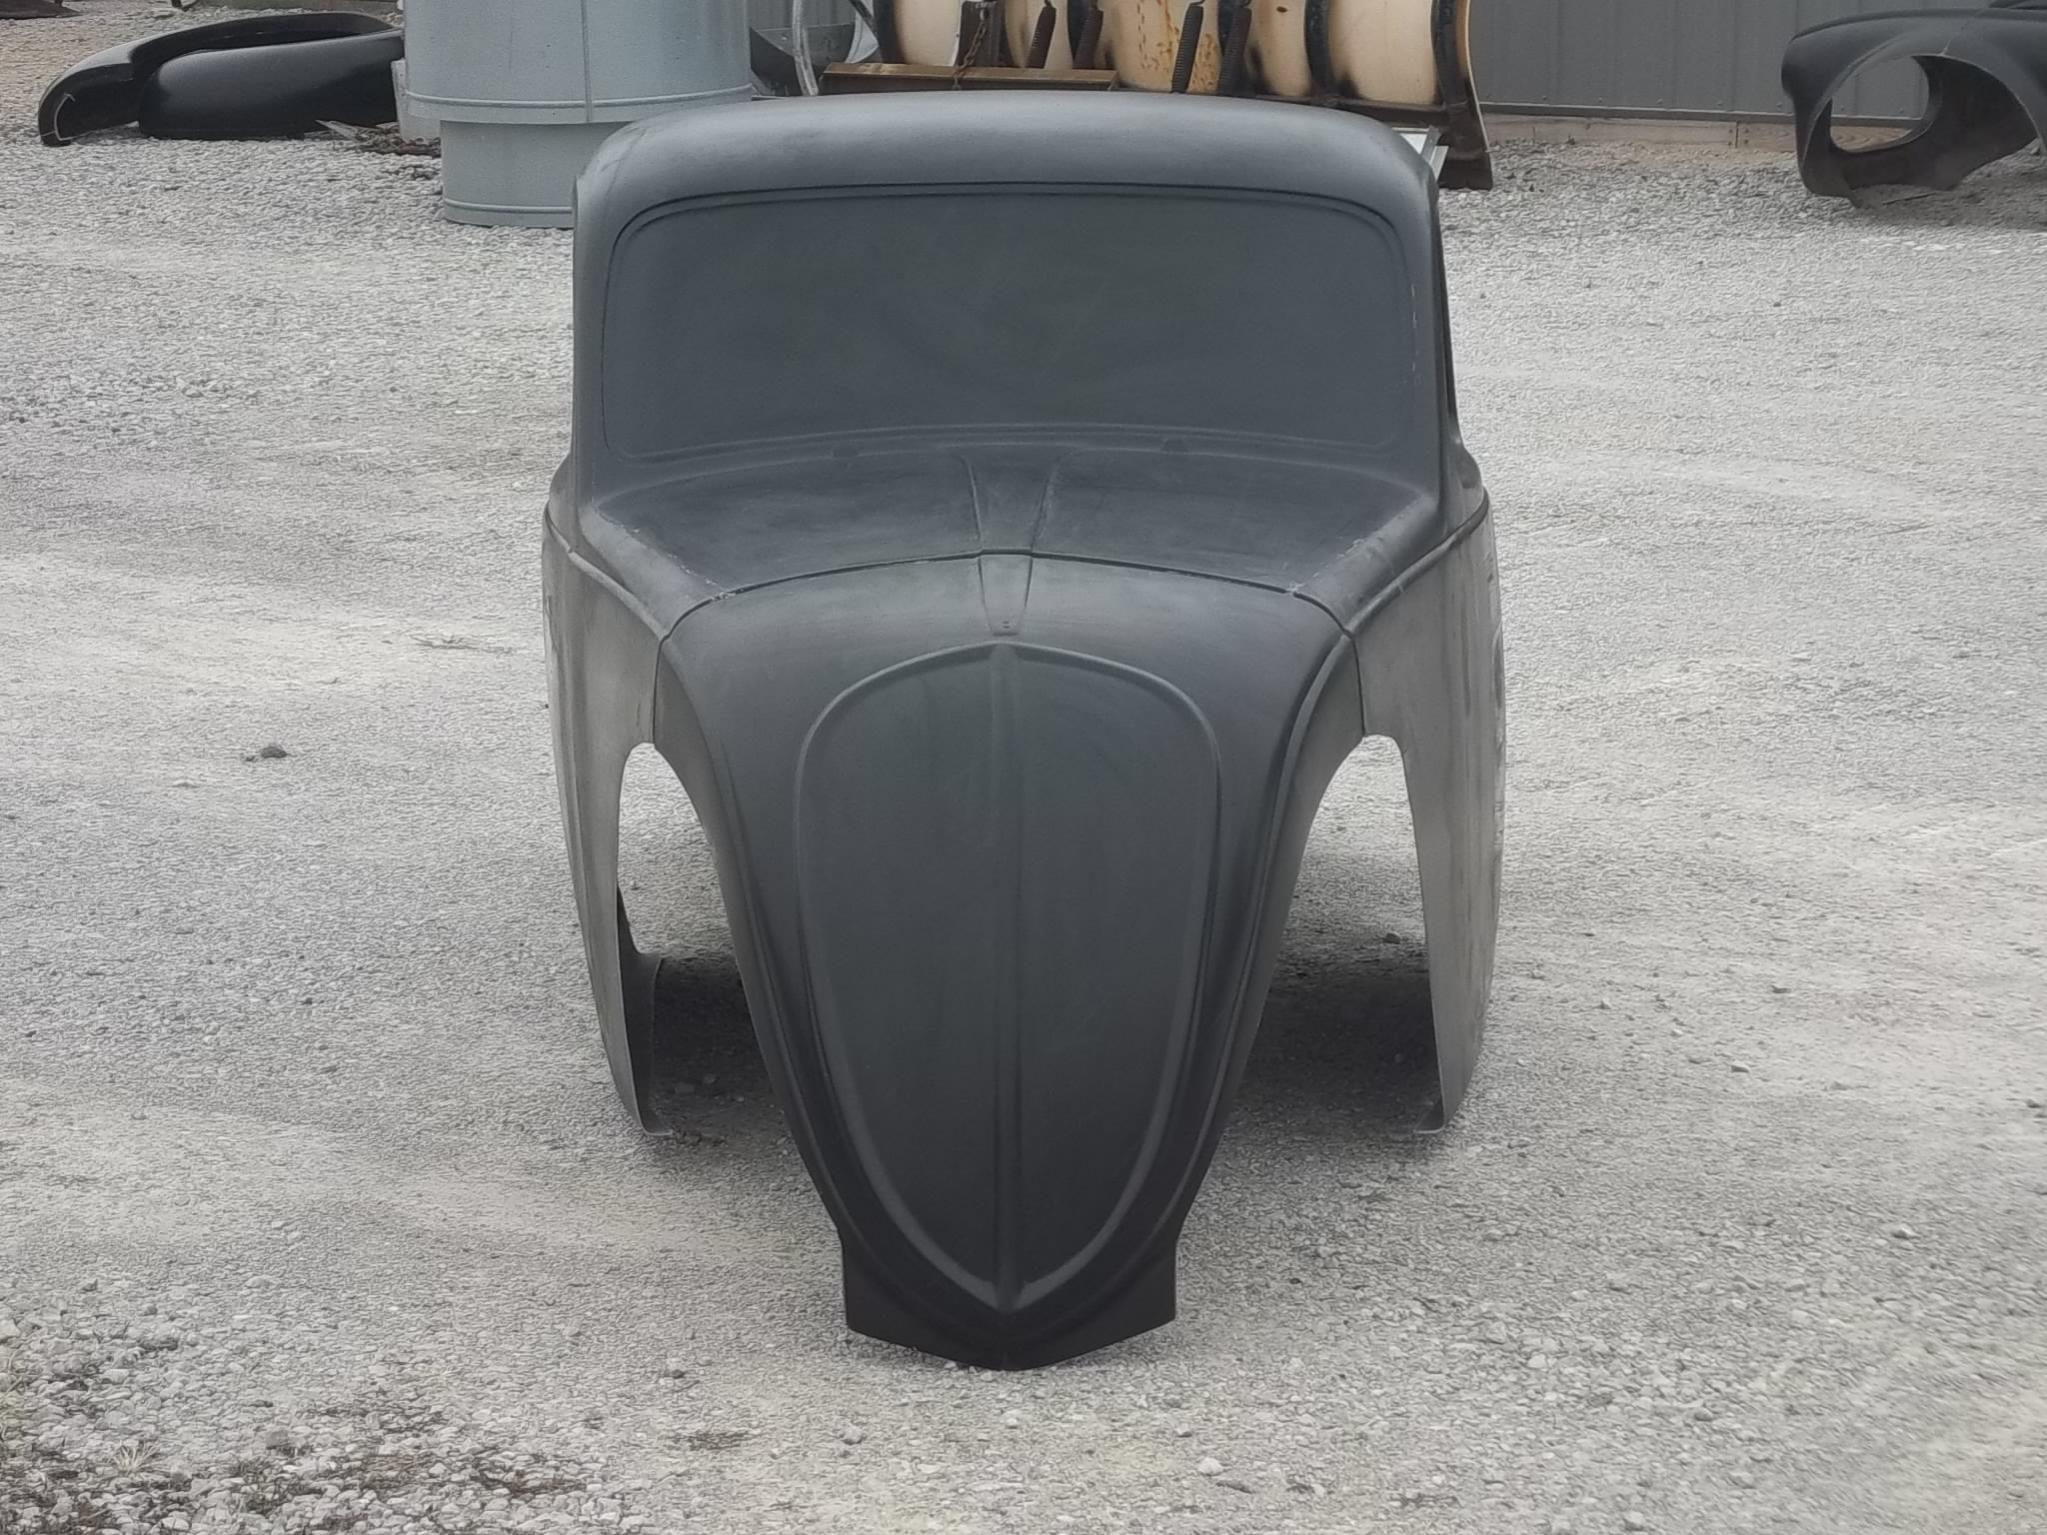 listing body coup trailer fiberglass img for sold on bring october fiat a lot sale auctions bat